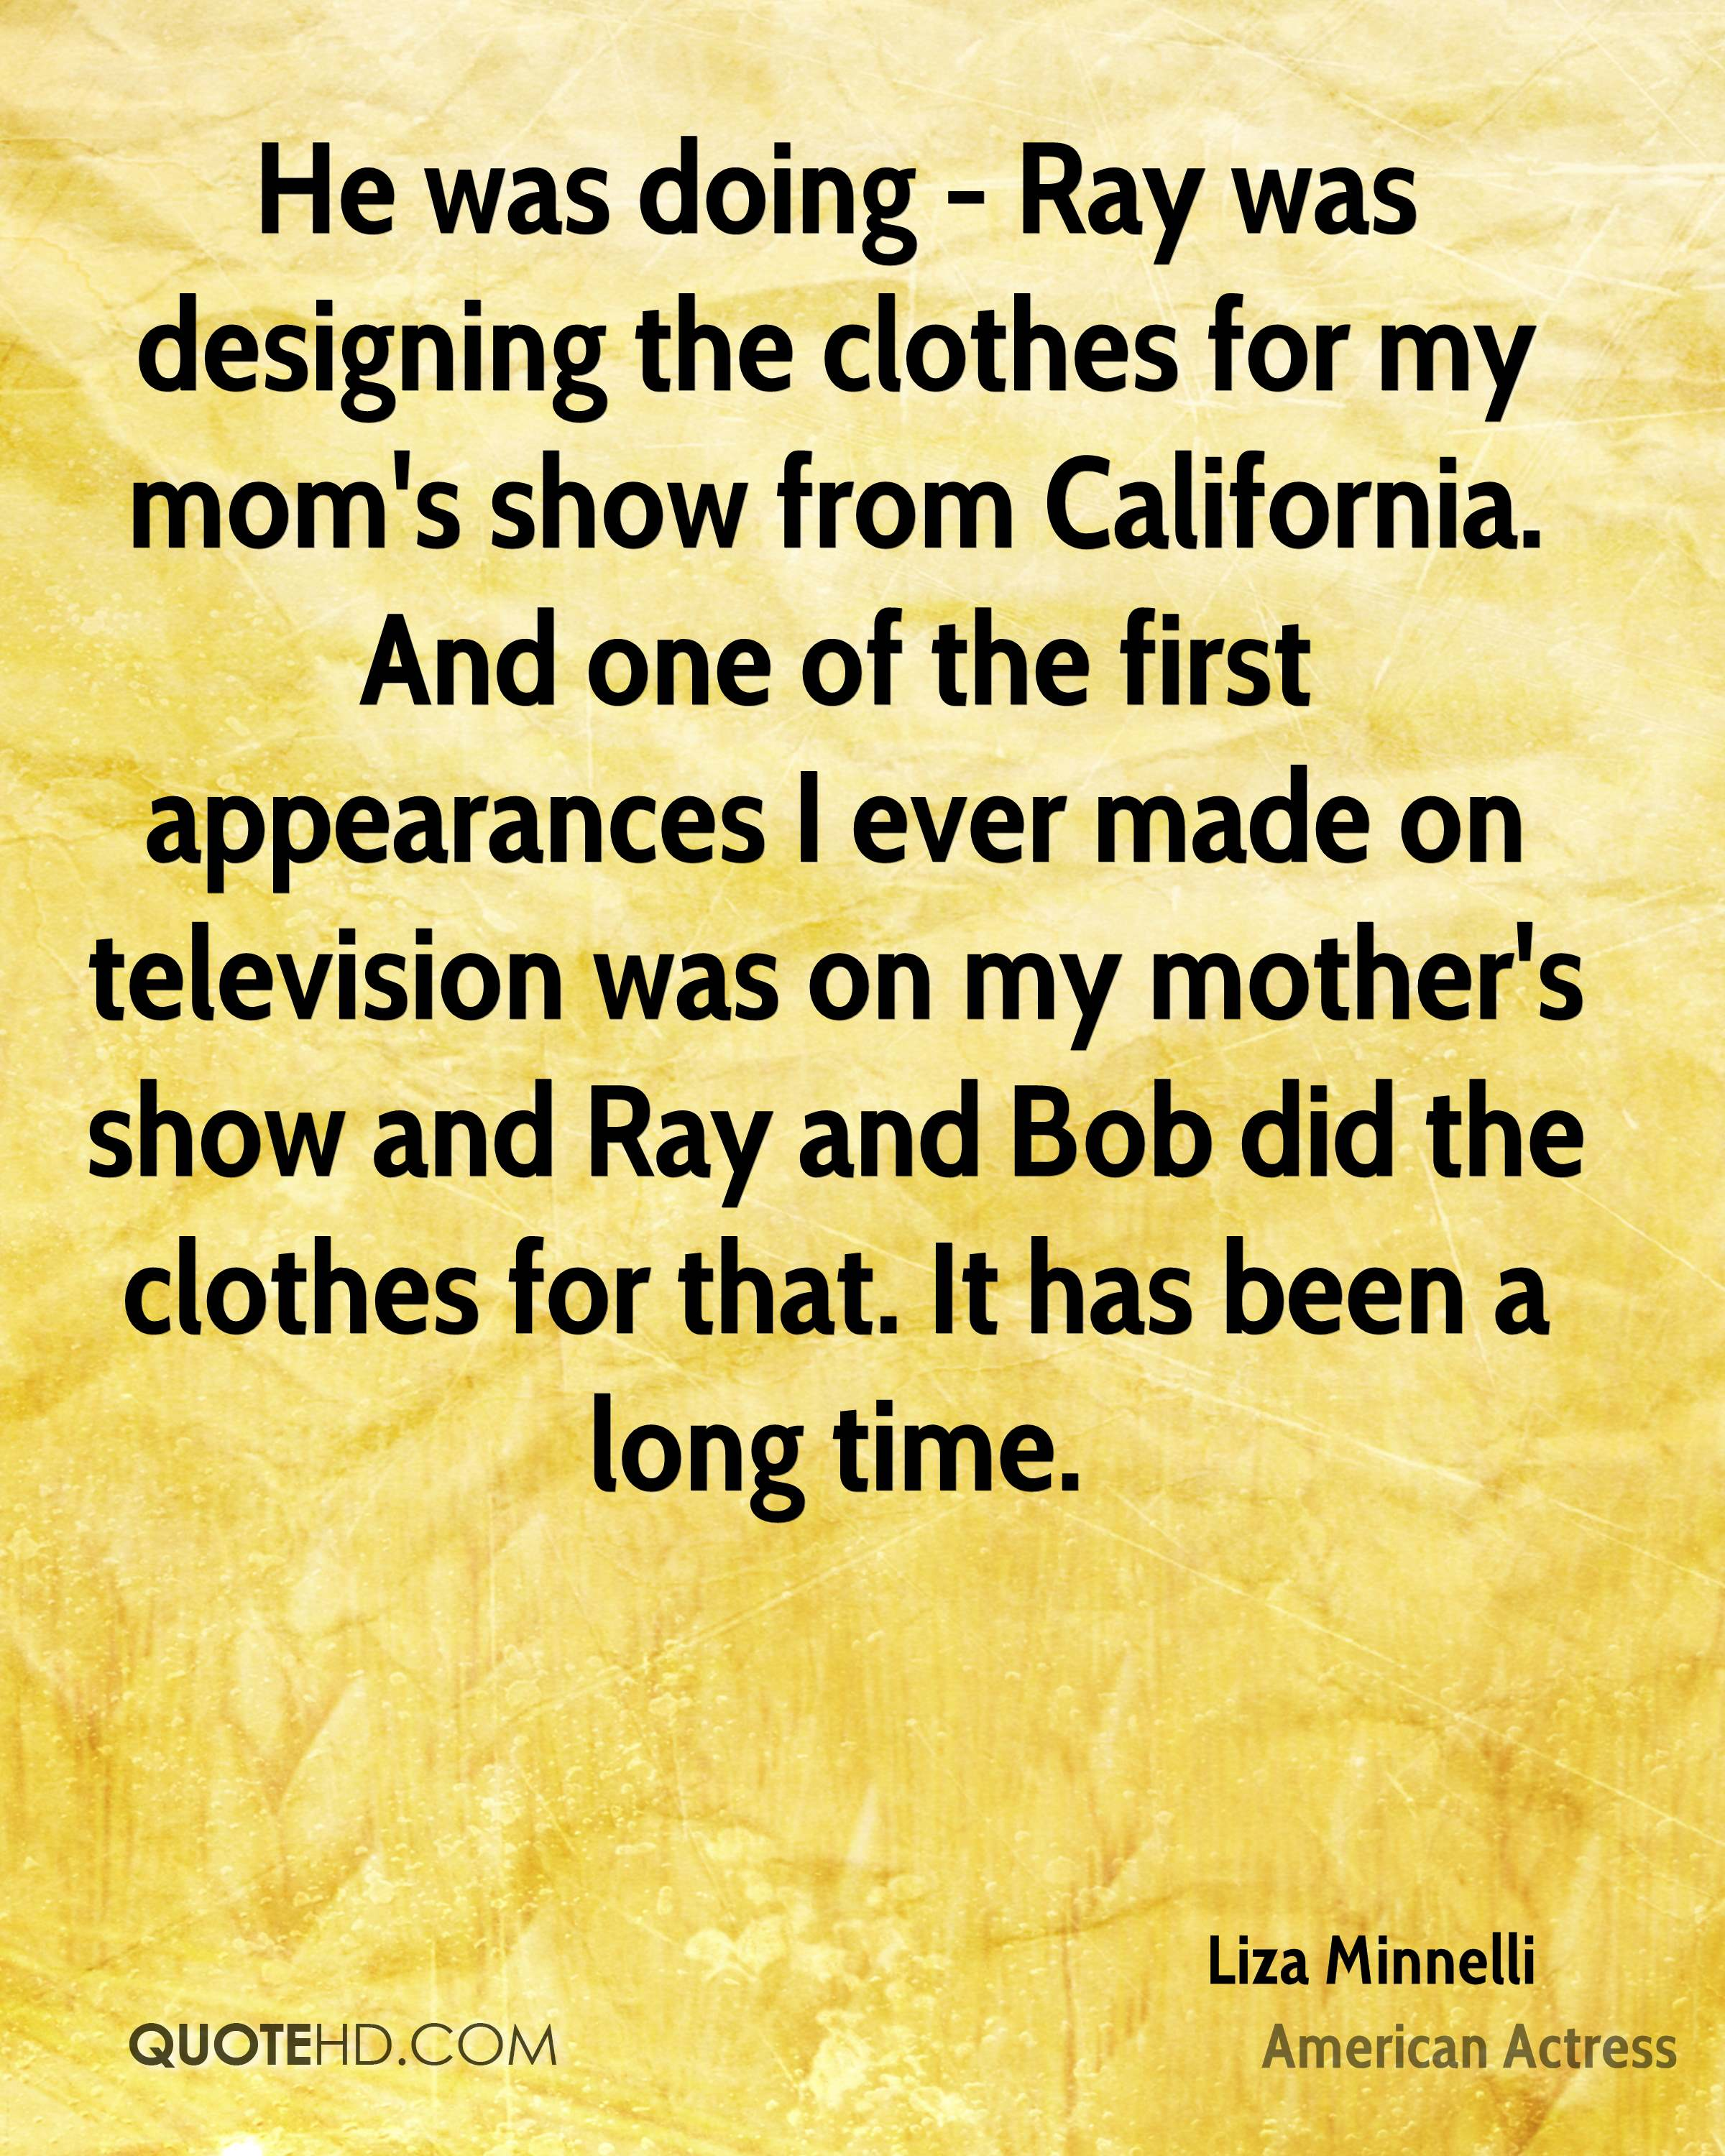 He was doing - Ray was designing the clothes for my mom's show from California. And one of the first appearances I ever made on television was on my mother's show and Ray and Bob did the clothes for that. It has been a long time.